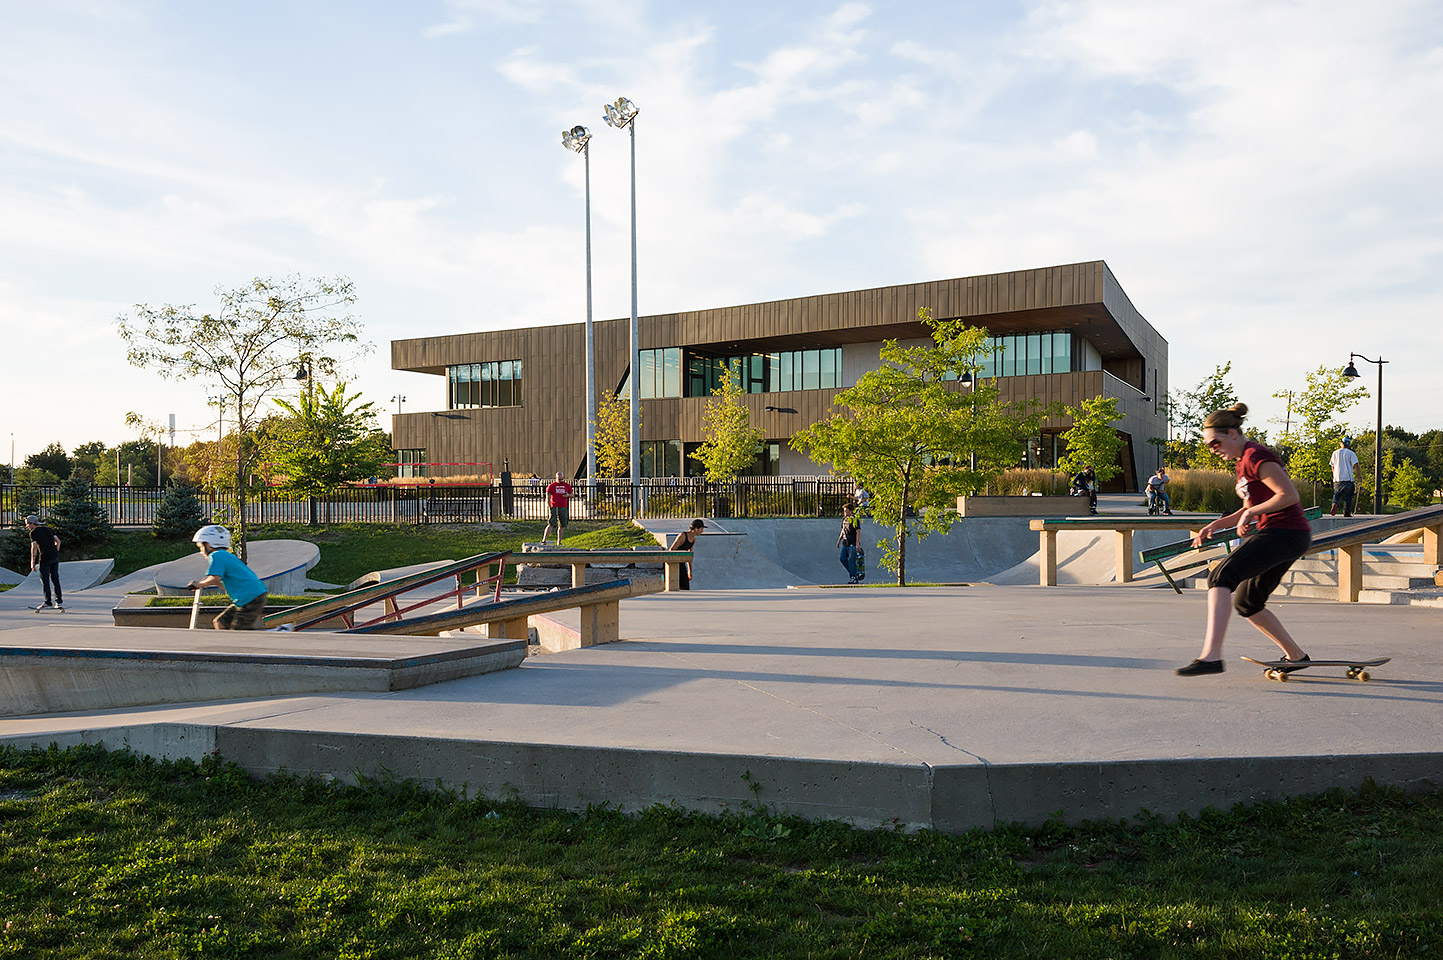 Skate Park and Ski Chalet, Chinguacousy Park, Brampton